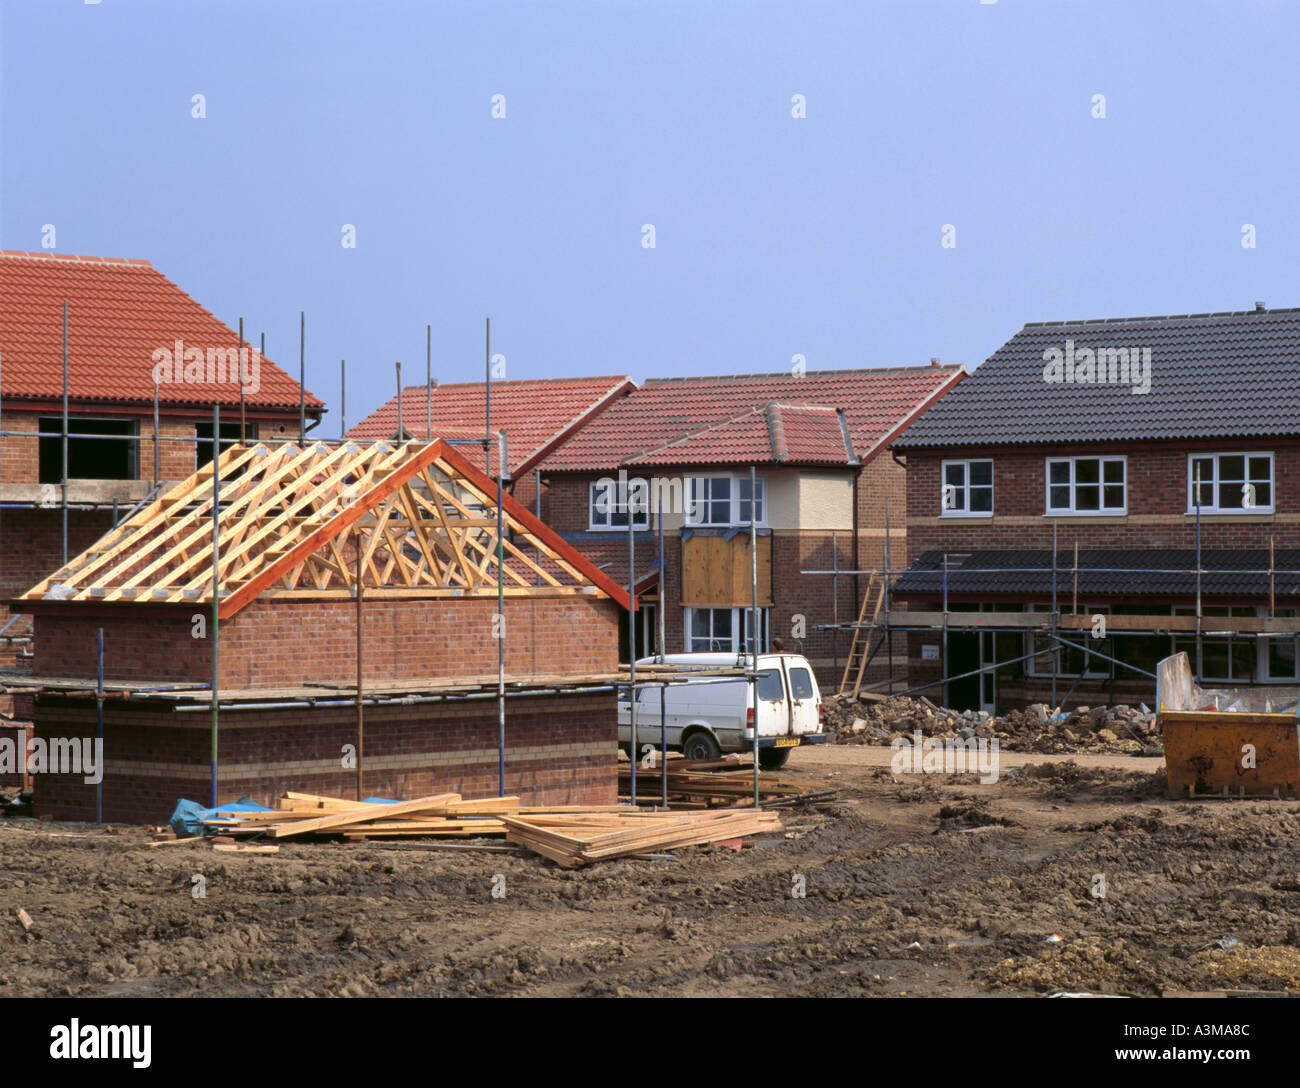 timber roof truss stockfotos timber roof truss bilder alamy. Black Bedroom Furniture Sets. Home Design Ideas